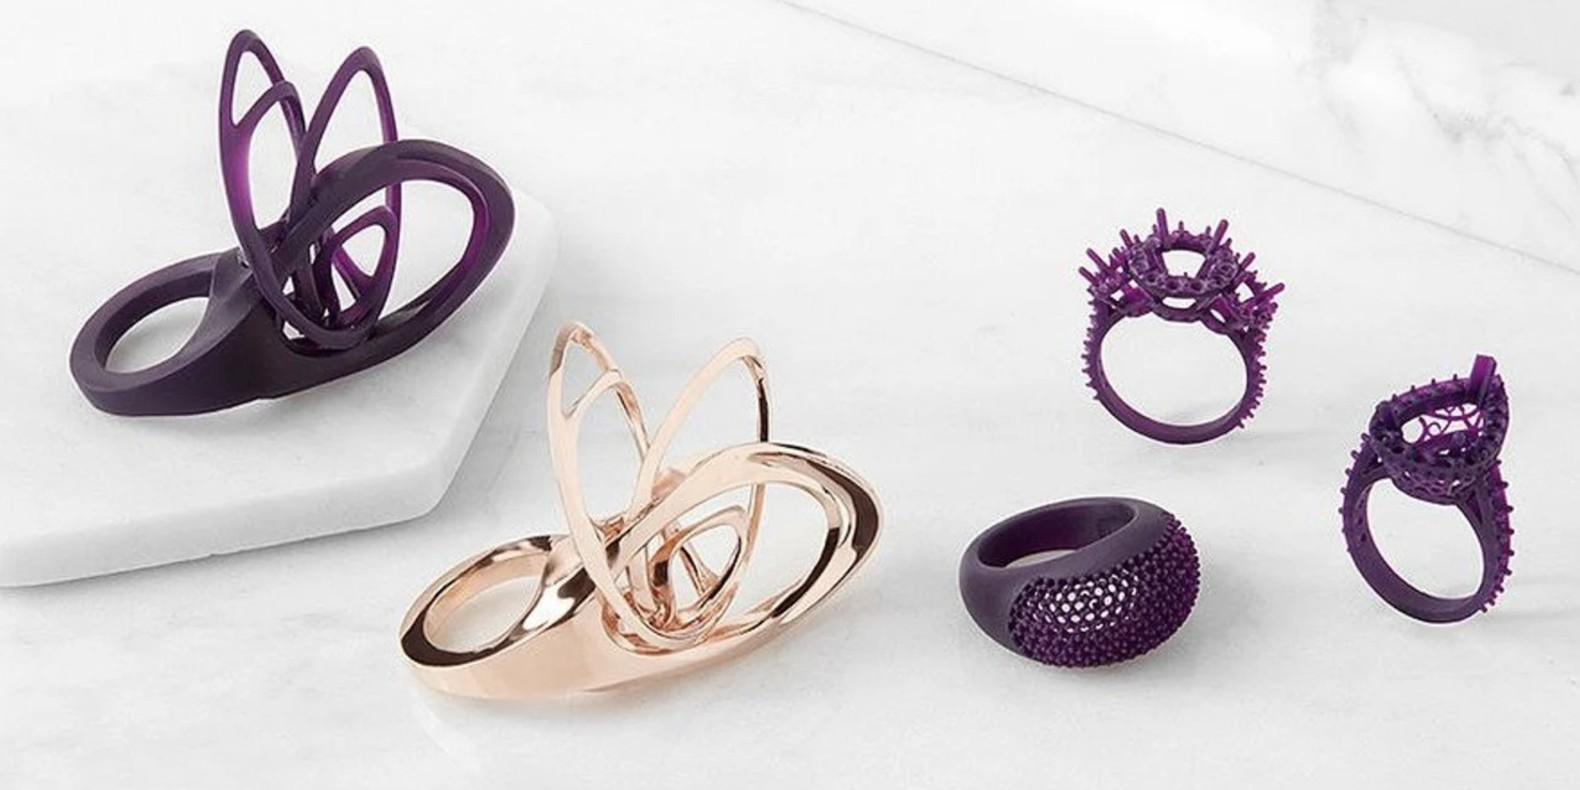 The challenge of design and 3D printing about Jewellery